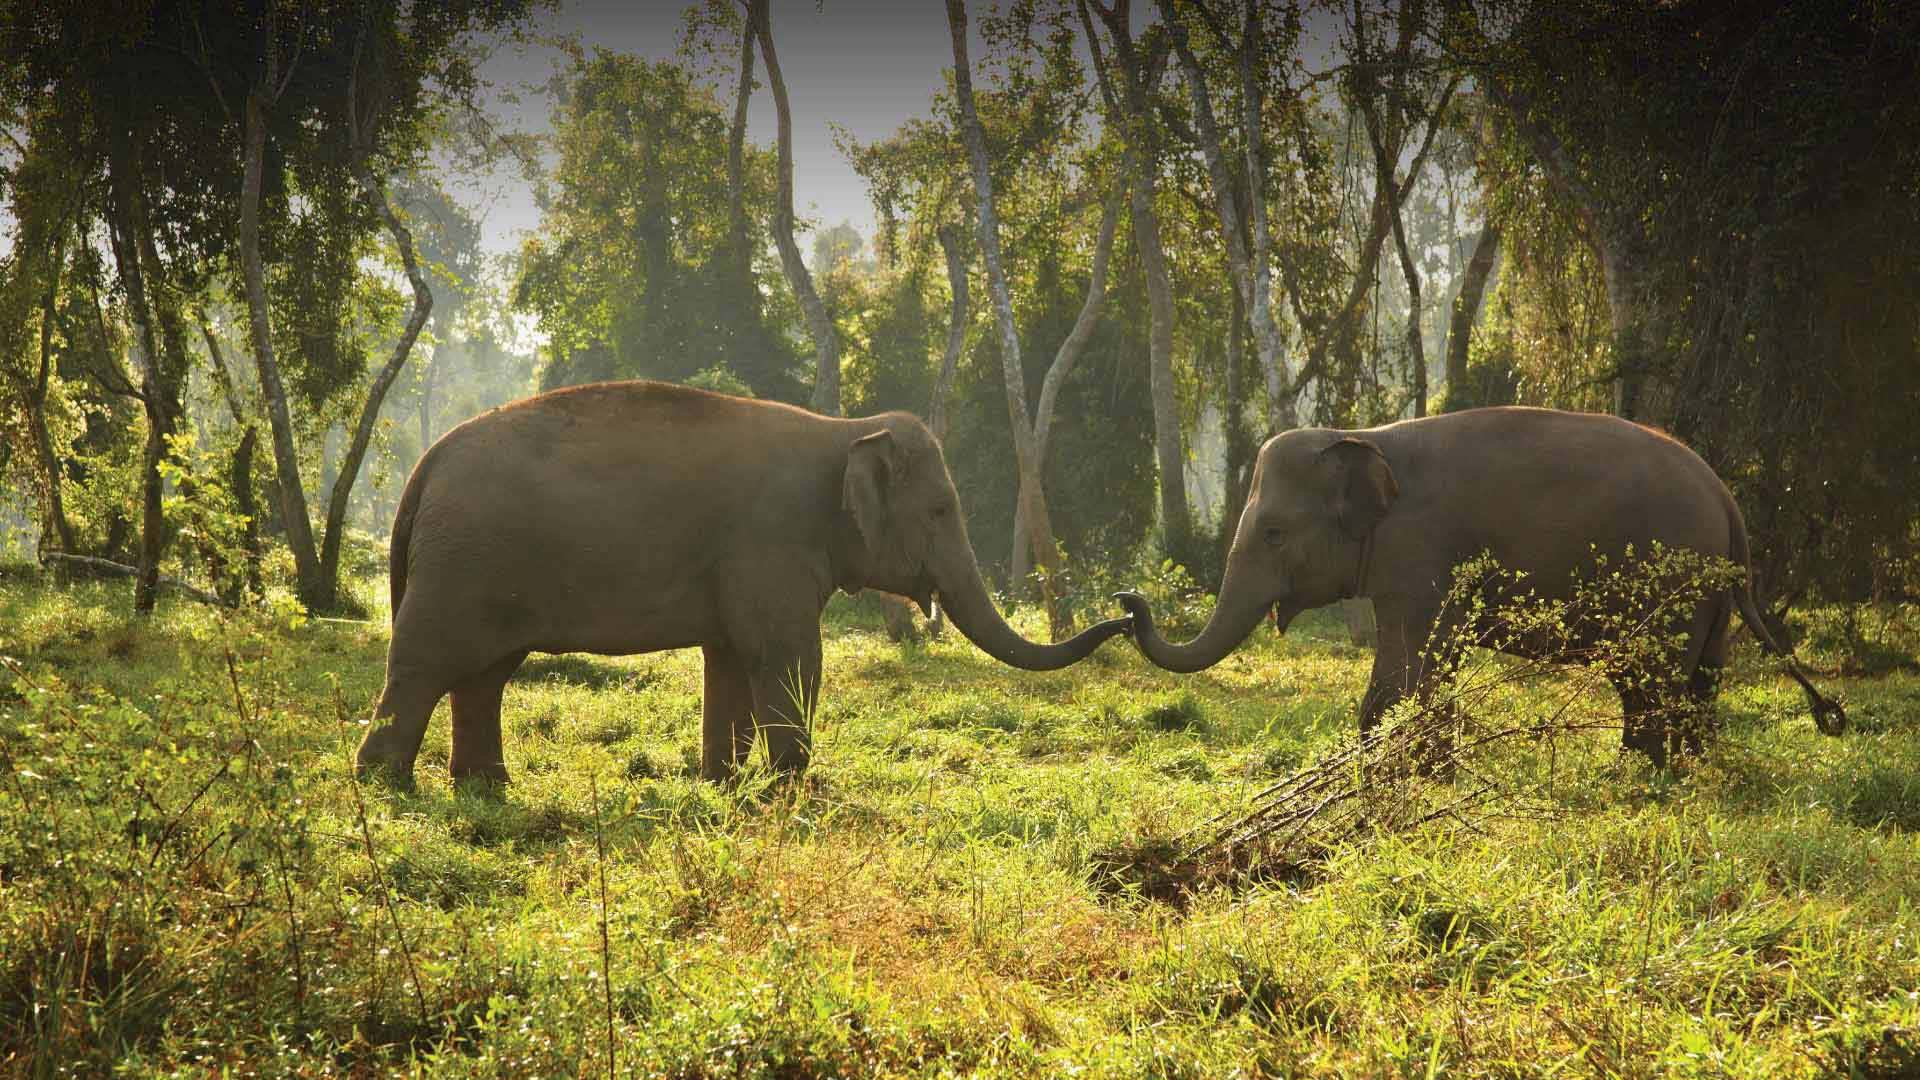 https://assets.anantara.com/image/upload/q_auto/media/minor/anantara/images/anantara-golden-triangle-elephant-camp--resort/the-resort/desktop-banner/anantara_golden_triangle_elephant_couple_header_1920x1080.jpg